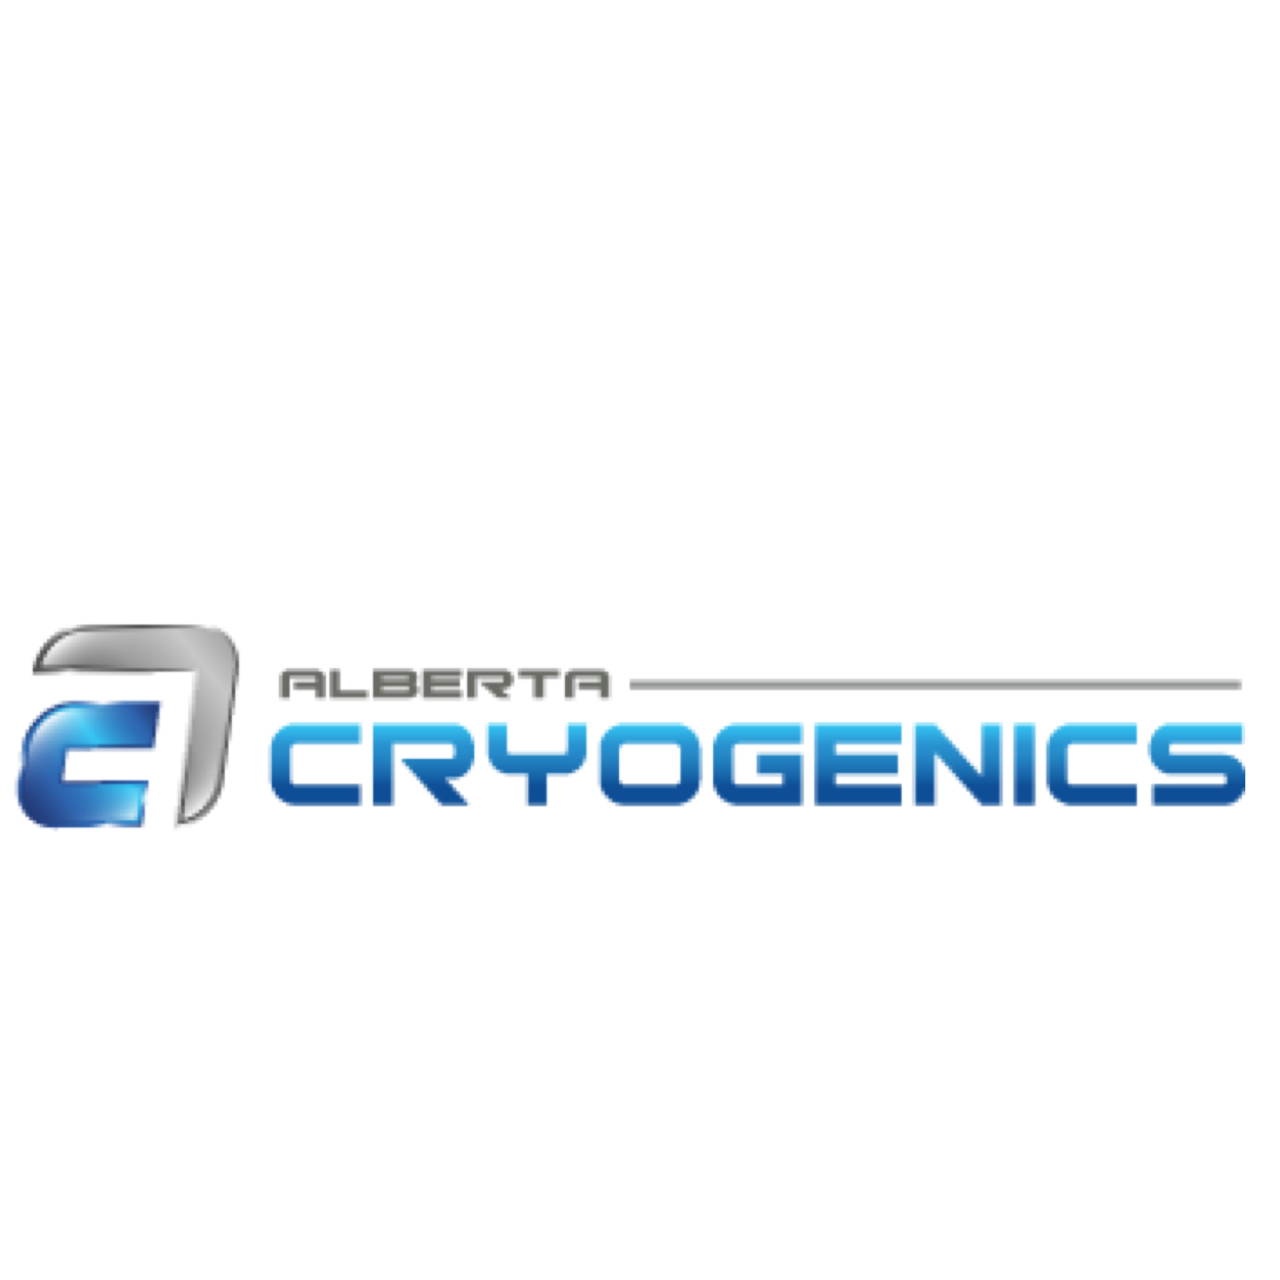 Alberta Cryogenics Inc logo